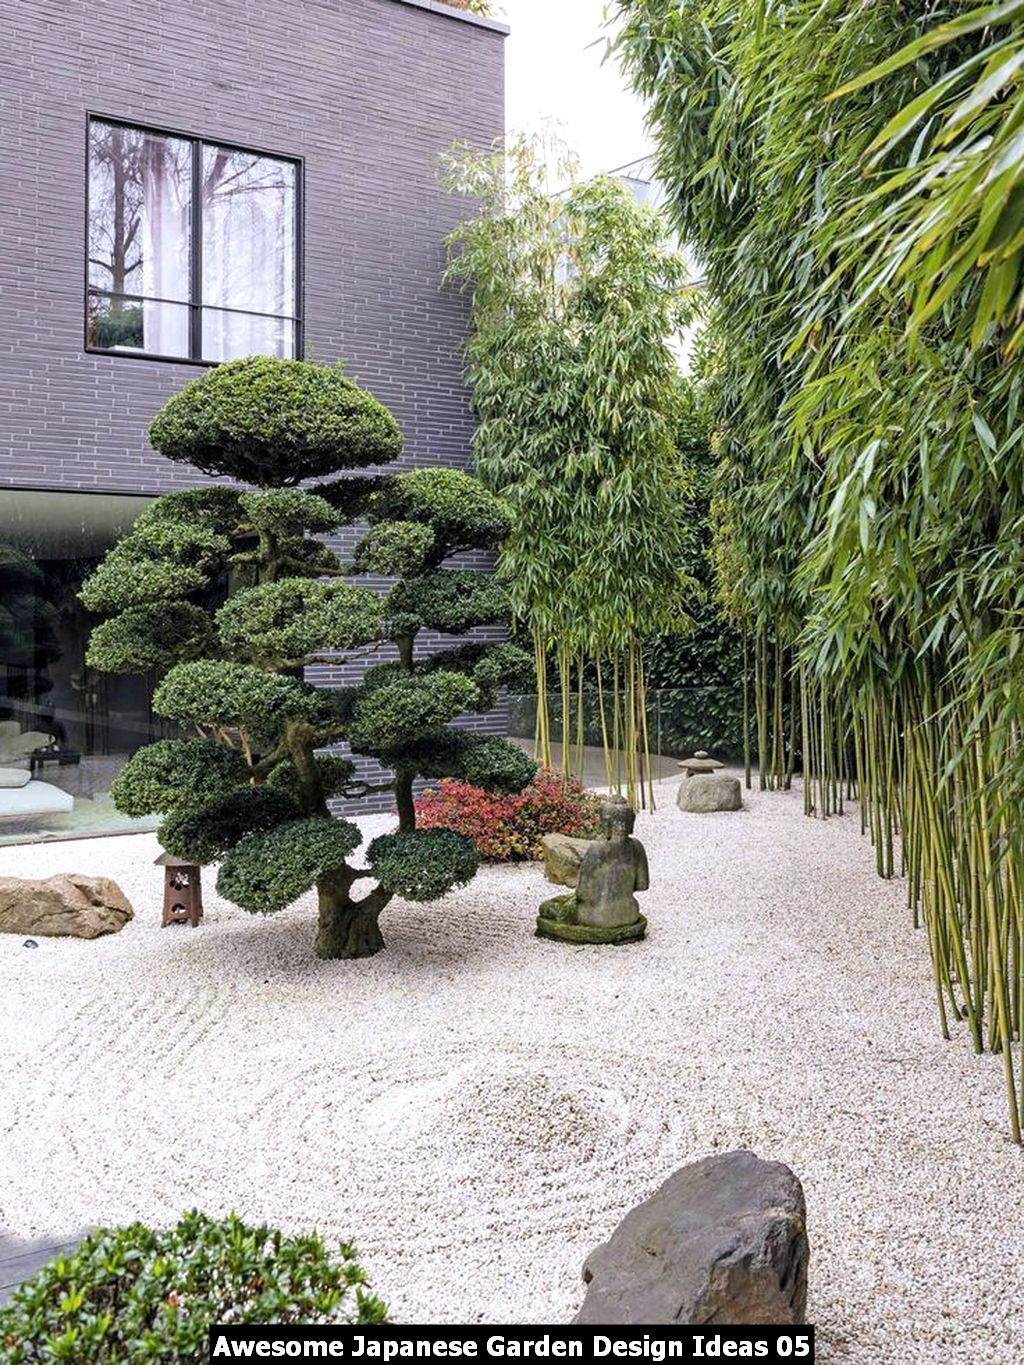 Awesome Japanese Garden Design Ideas 05